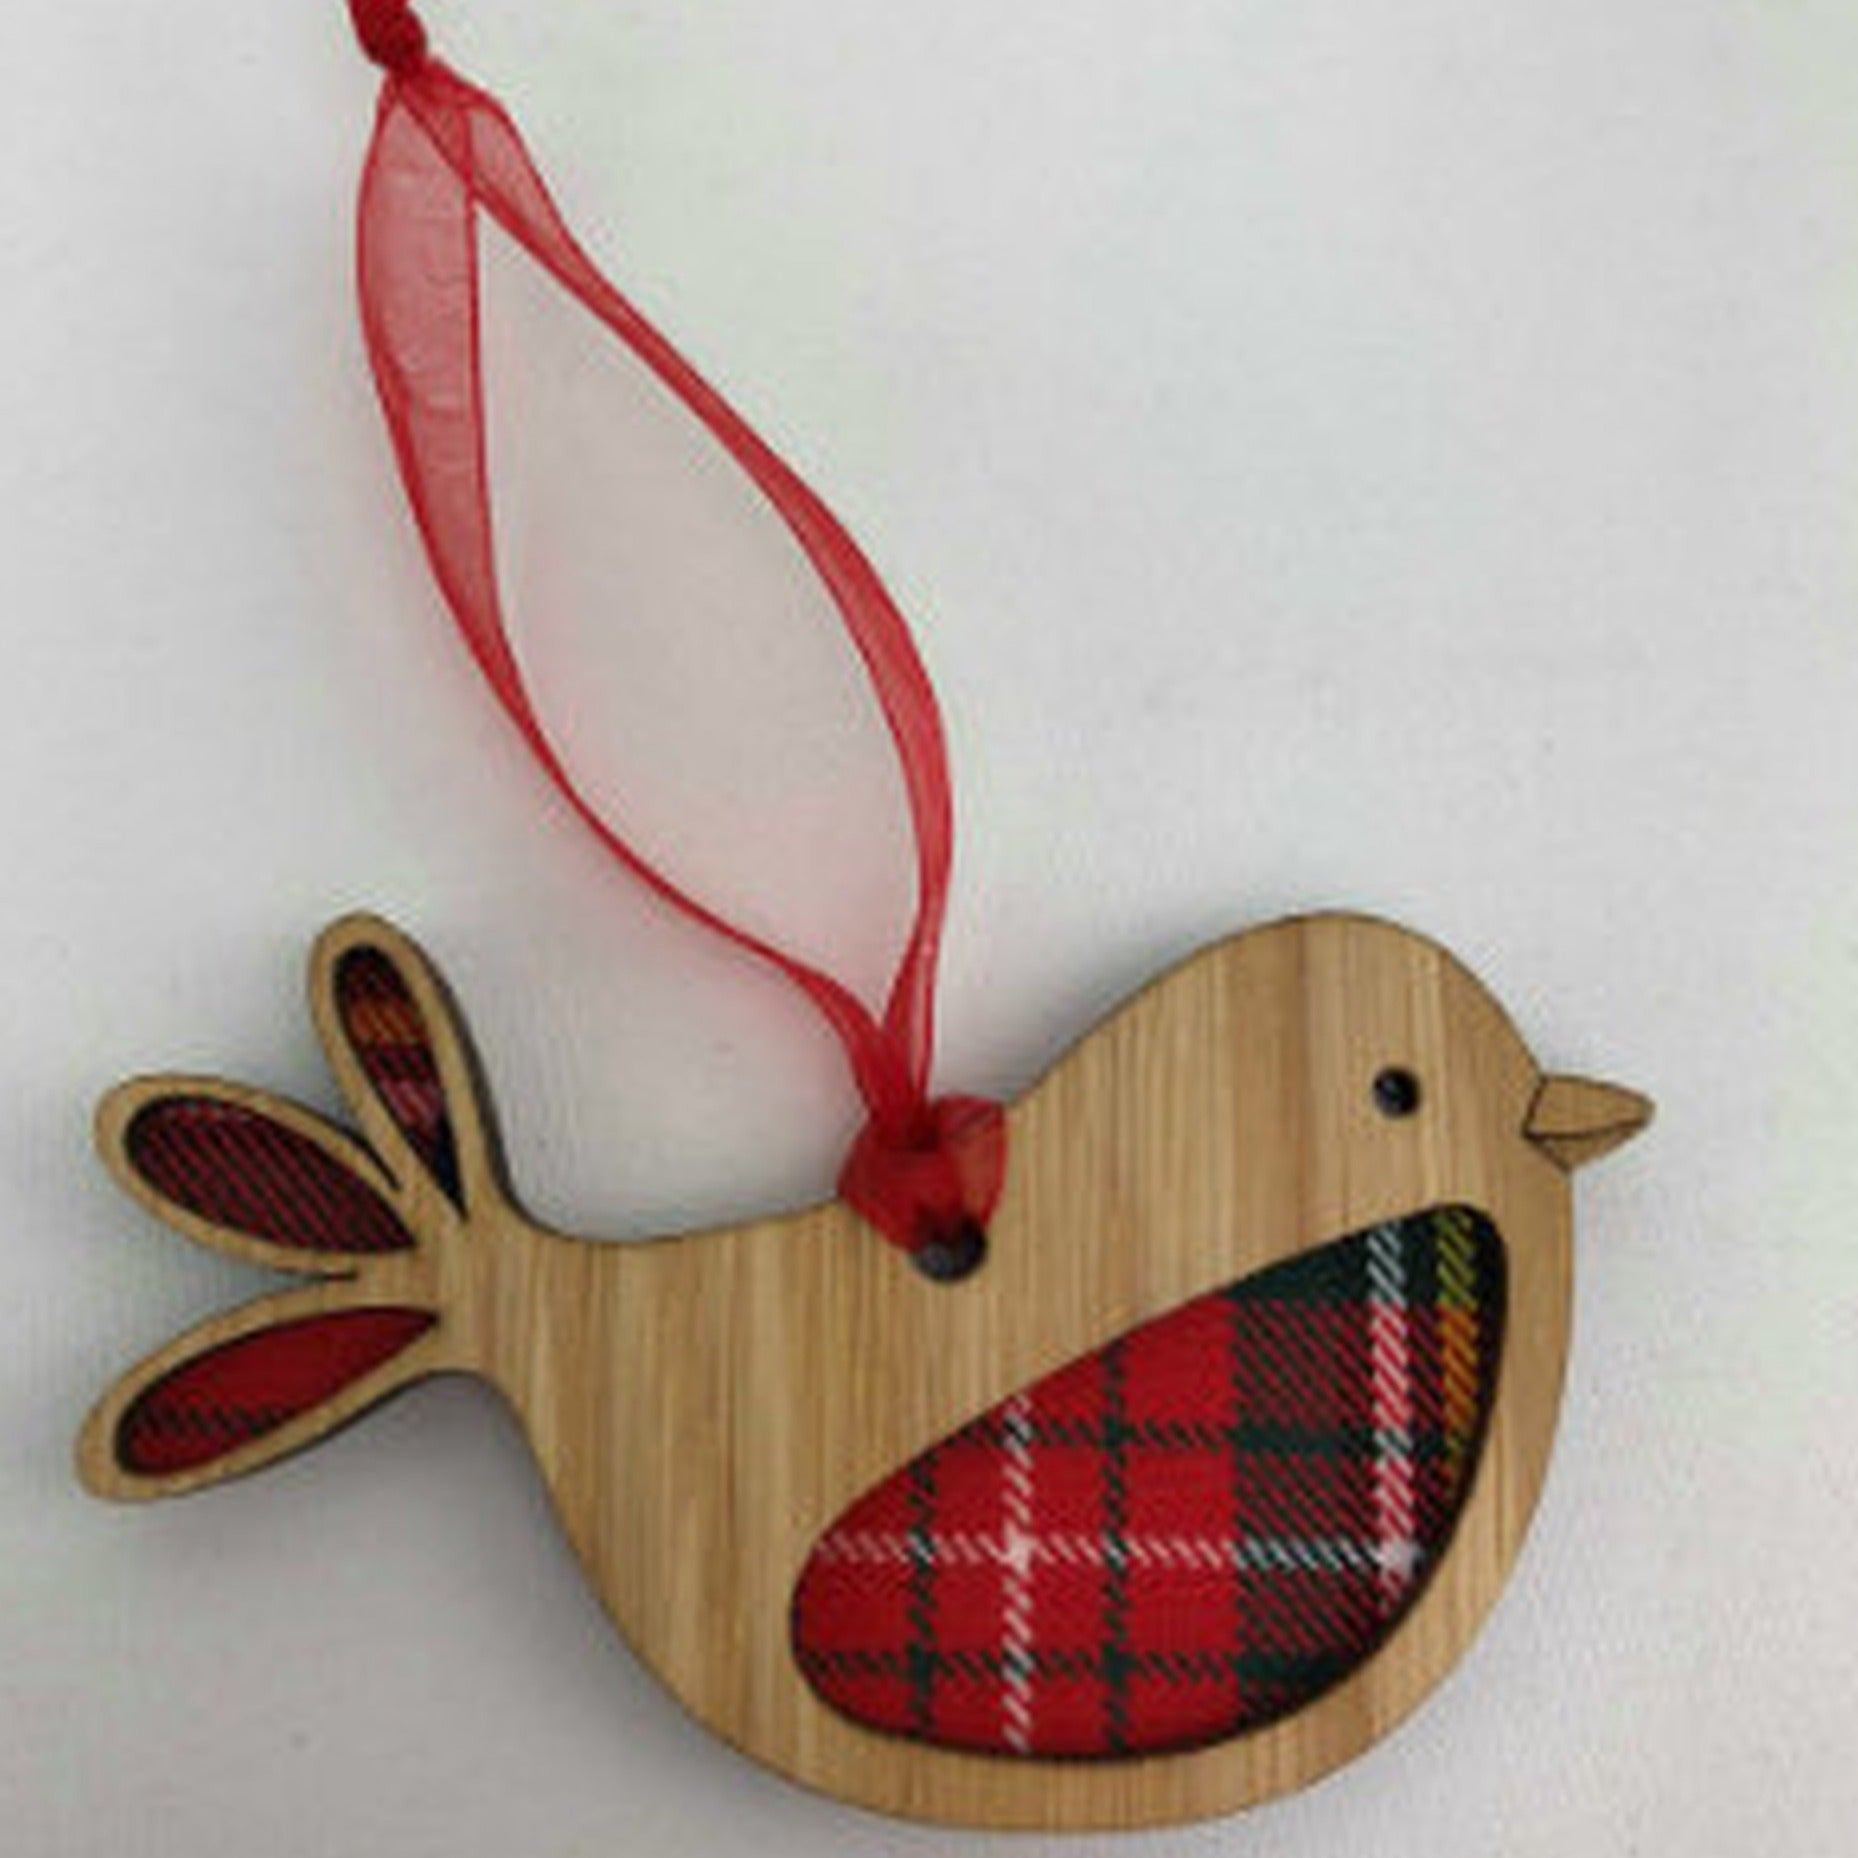 A unique keepsake Christmas decoration with a Scottish twist.  A wooden Robin with tartan inserts, mounted on card and packaged in clear cellophane packets.